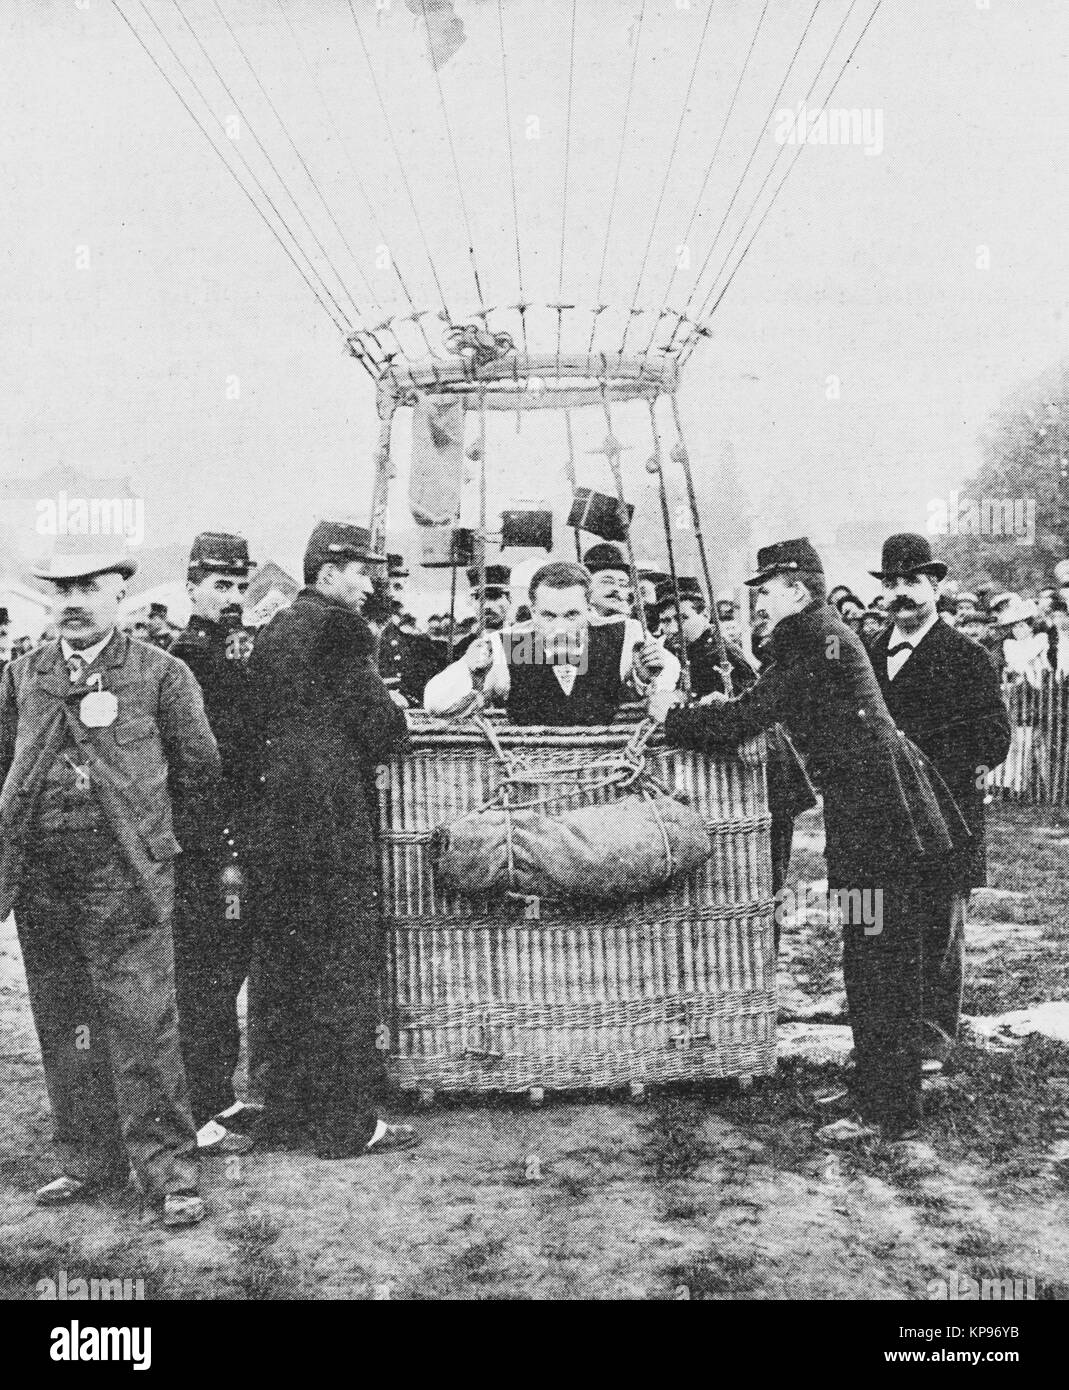 Balloon race in Vincennes, Explorer Jacques Faure with the Aero Club Balloon, Universal Exhibition 1900 in Paris, - Stock Image